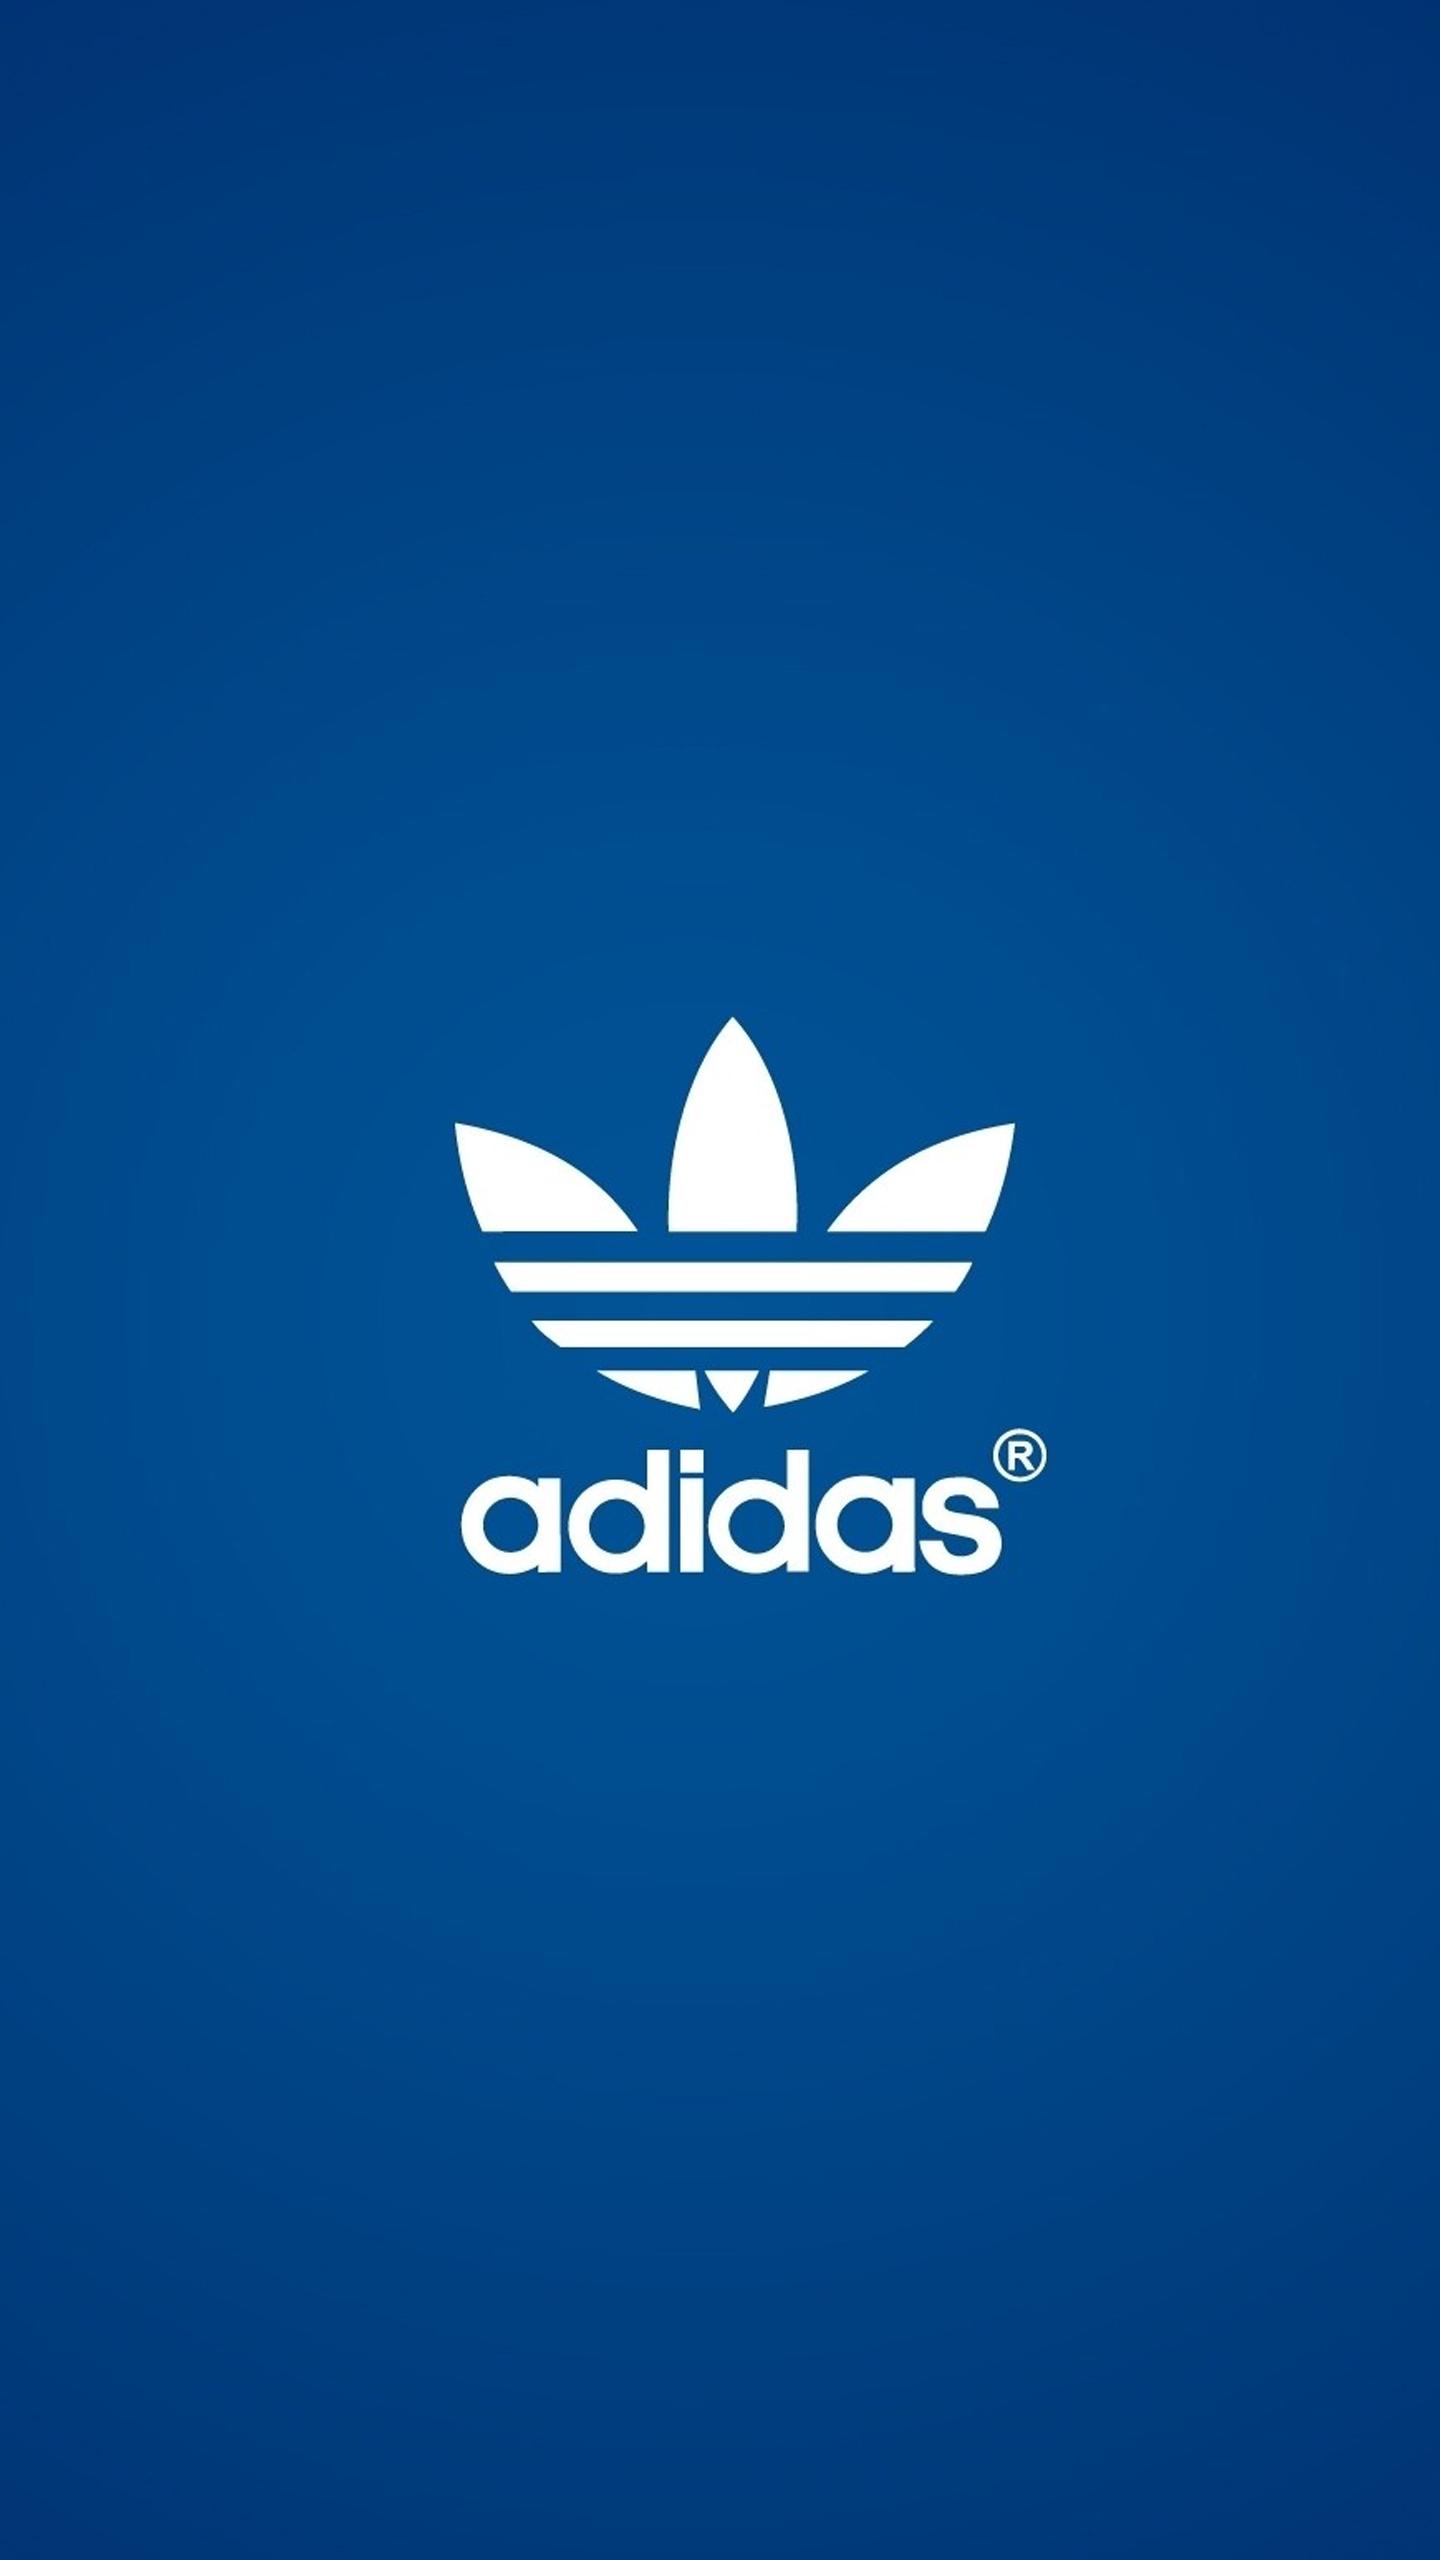 Resolution 1440x2560 Wallpapers Blue Adidas Android Wallpapers 1440x2560